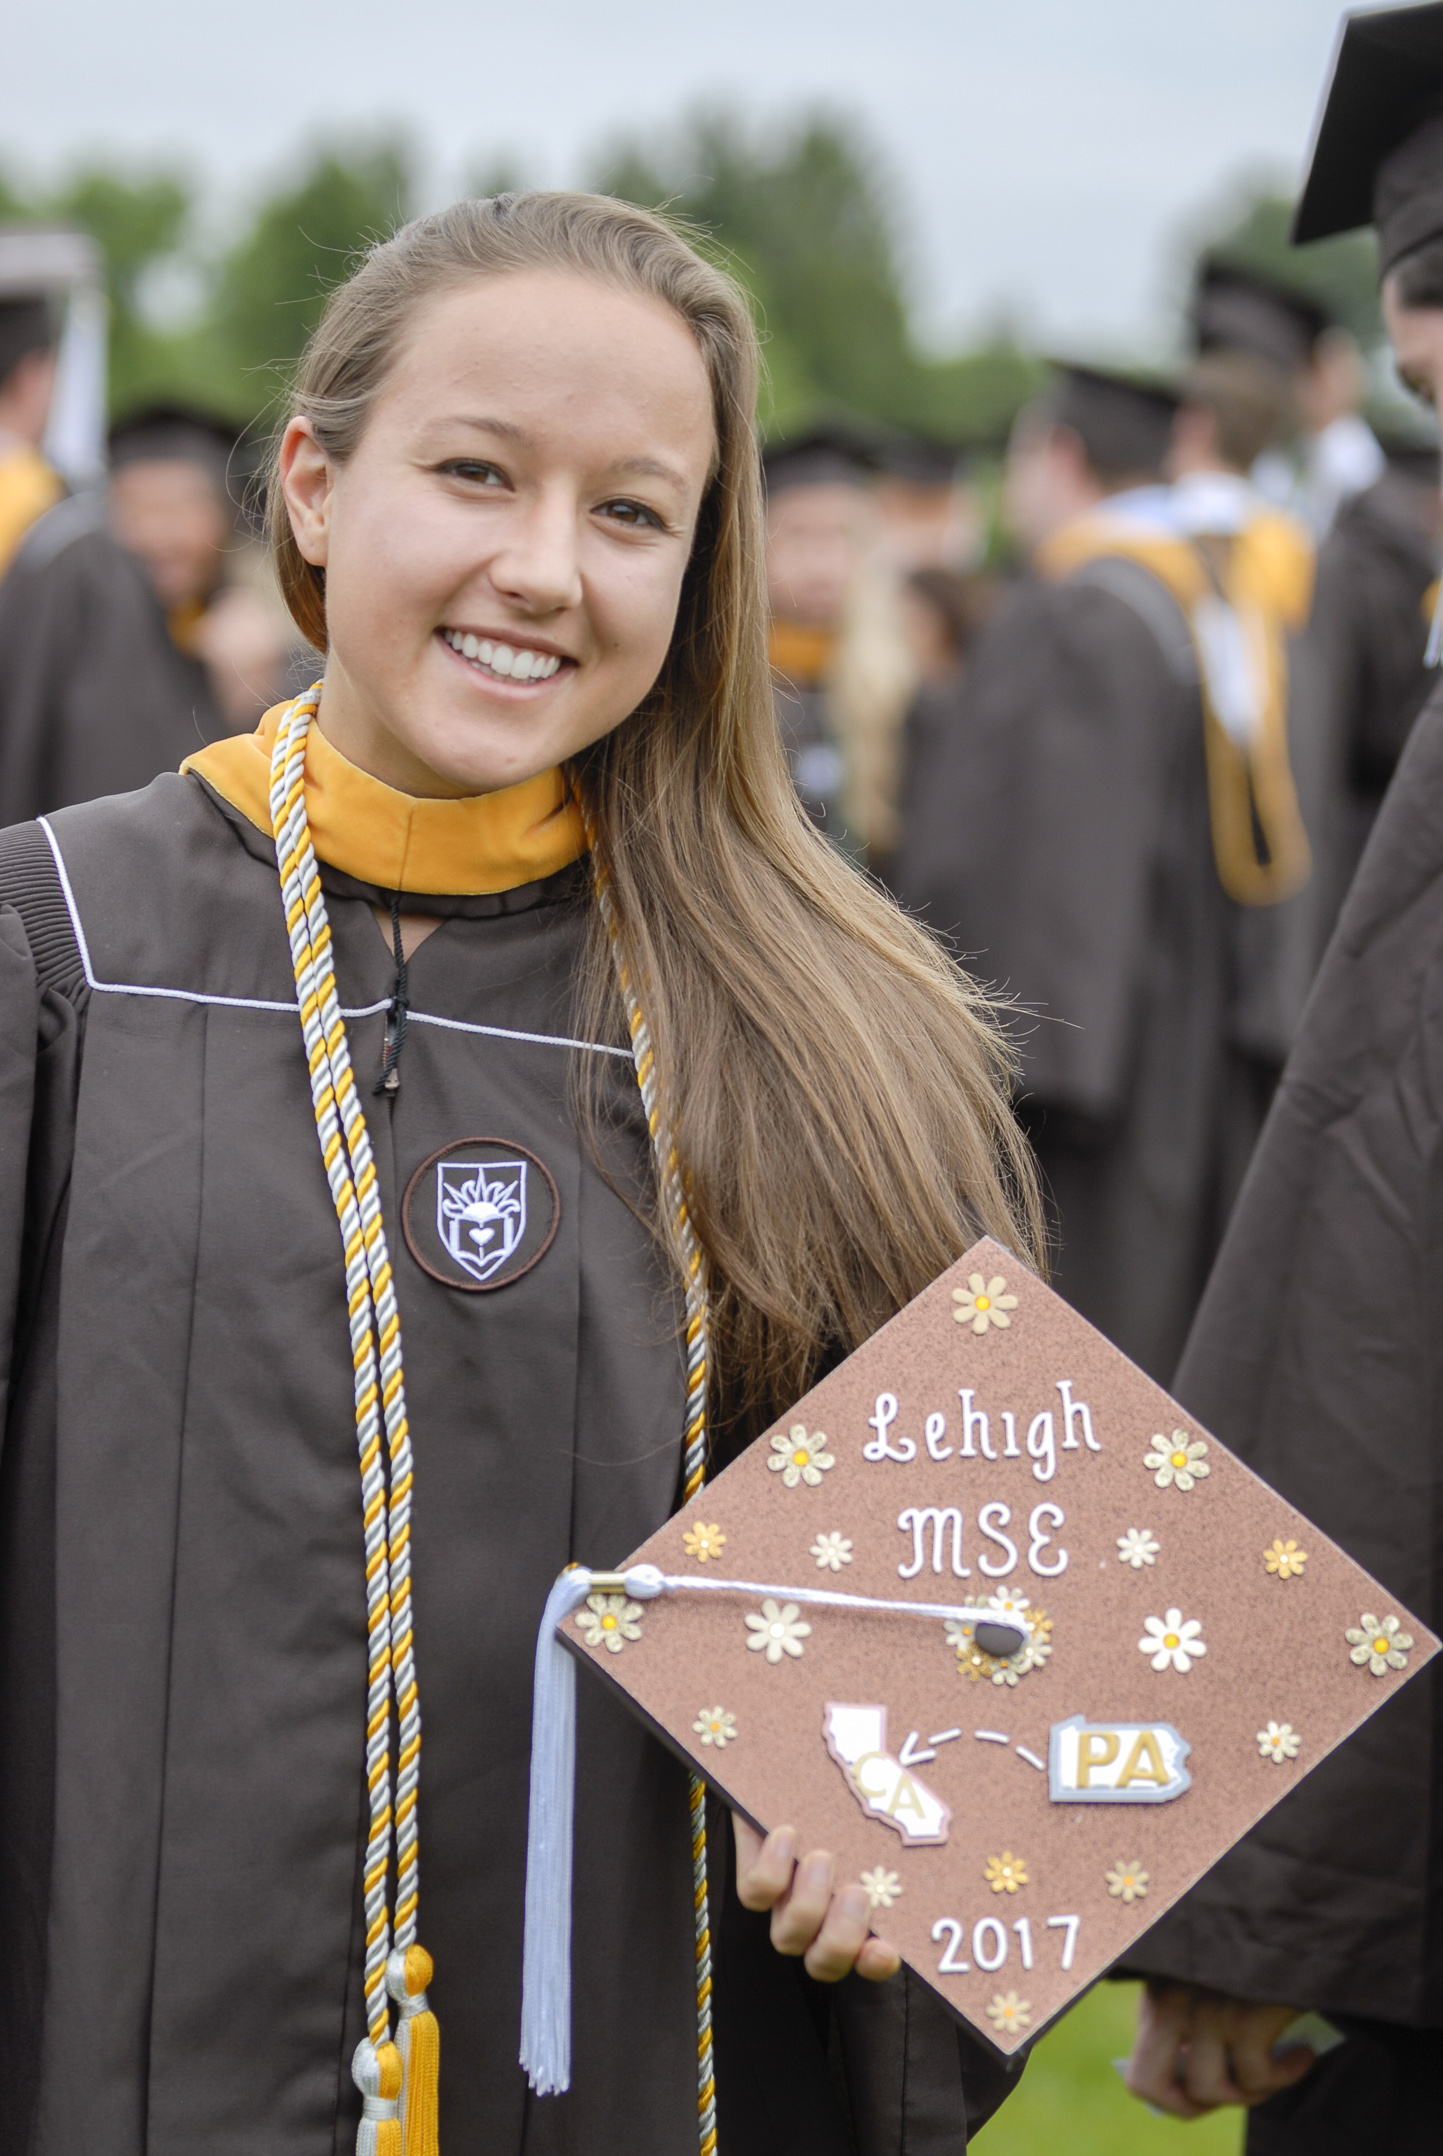 Amanda Leigh Ruschel, '17, holds her graduation cap Monday, May 22, 2017, outside Goodman Stadium. Ruschel, a material science and engineering graduate, decorated her hat to represent her major and her upcoming job in California. (Roshan Giyanani/B&W Staff)